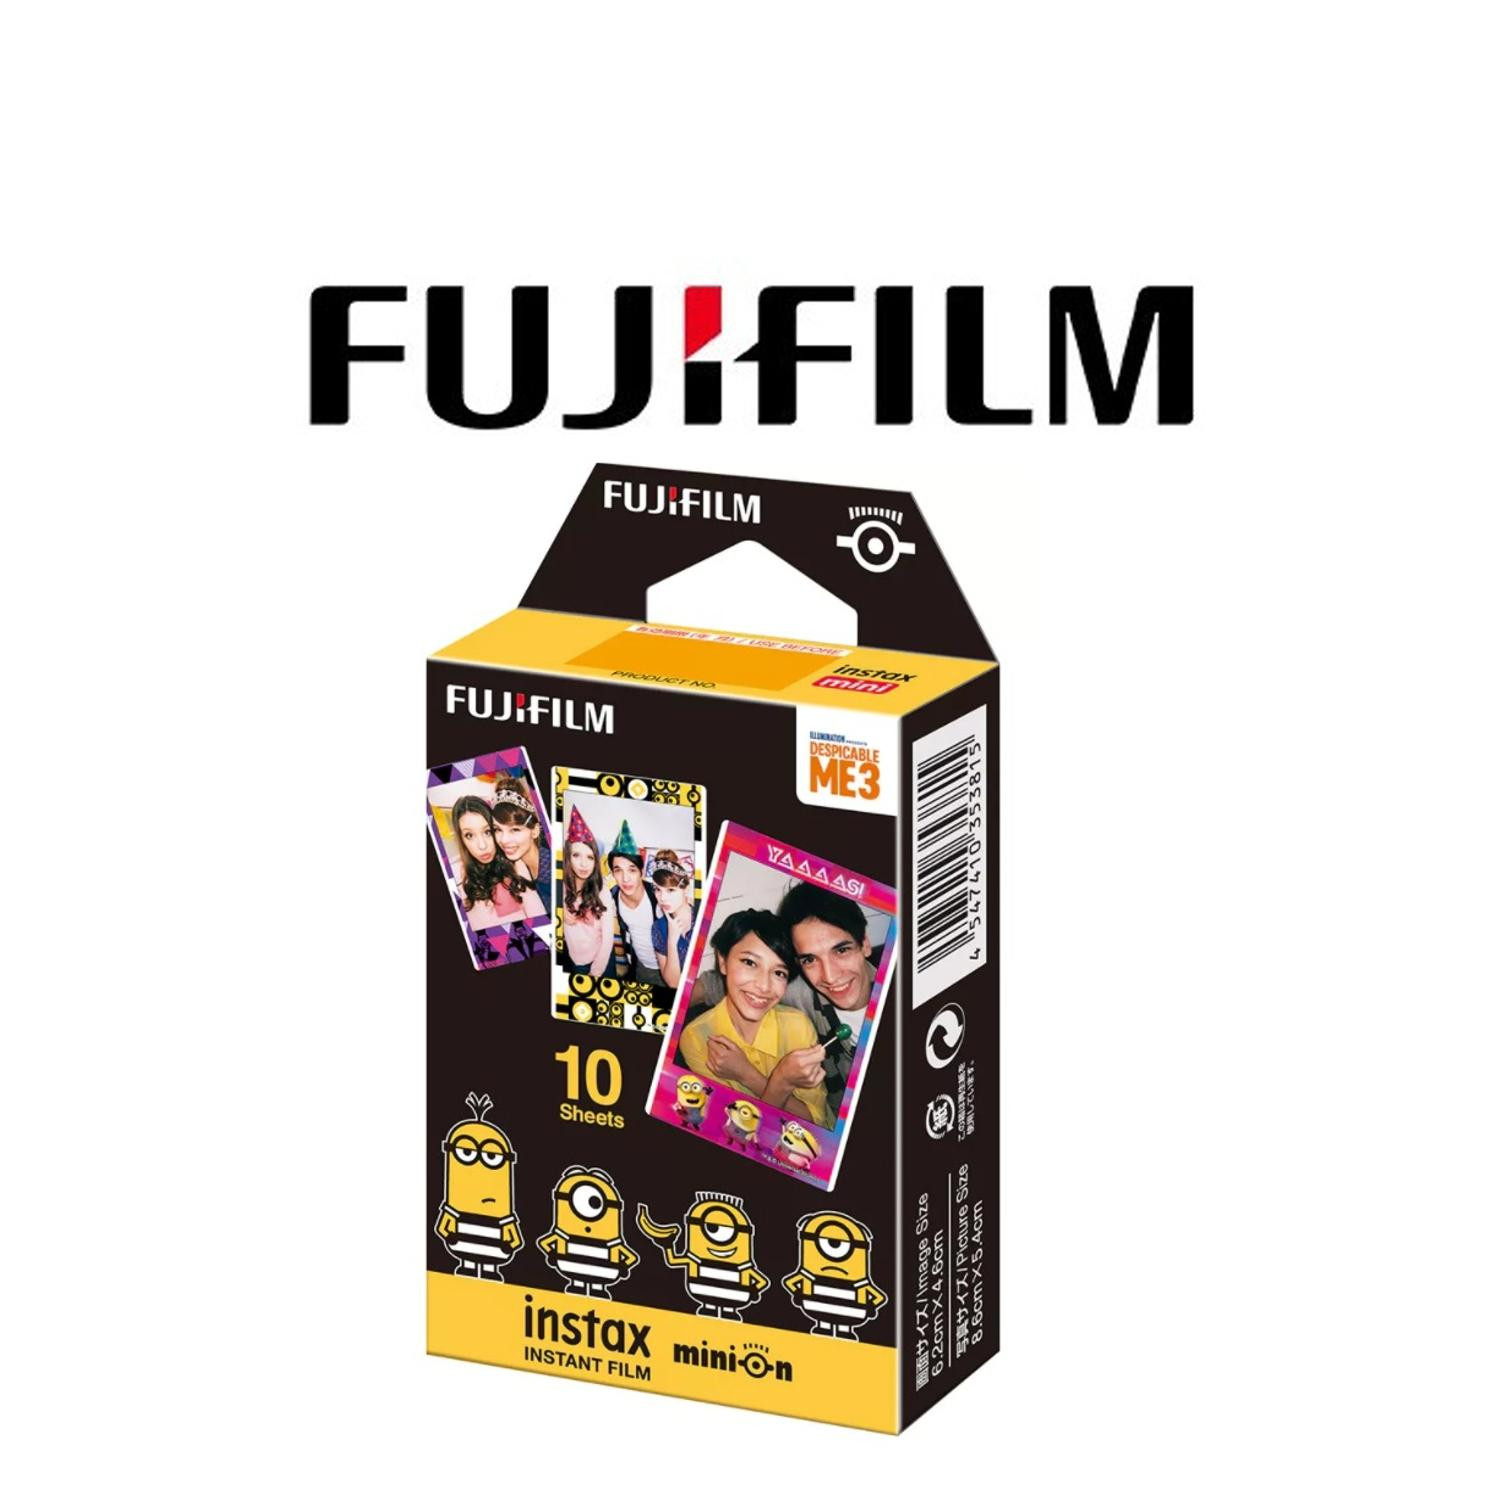 FUJIFILM INSTAX MINI FILM \u2013 MINION - DESPICABLE ME 3 (10 SHEETS)